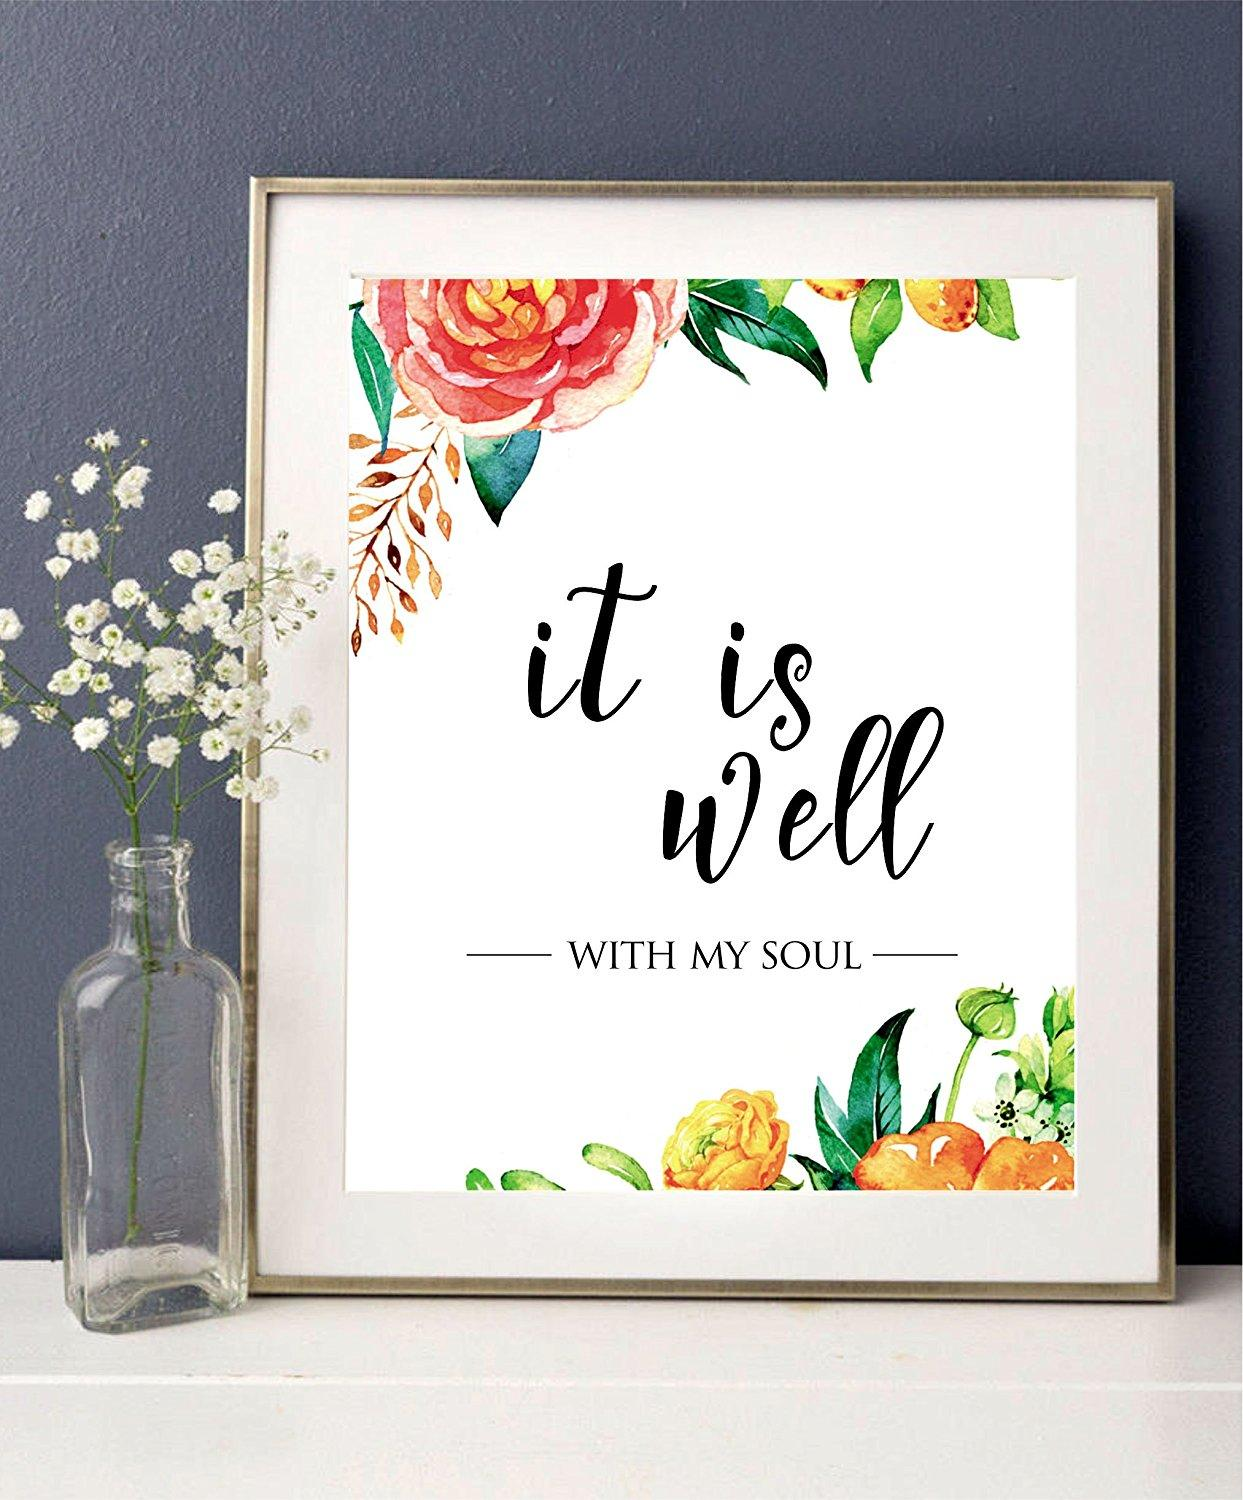 graphic relating to Printable Quotes to Frame named It is very well with my soul - Printable quotation, Christian Wall Print - wall artwork decor - marriage artwork - Scripture Print - floral offers - Property decor